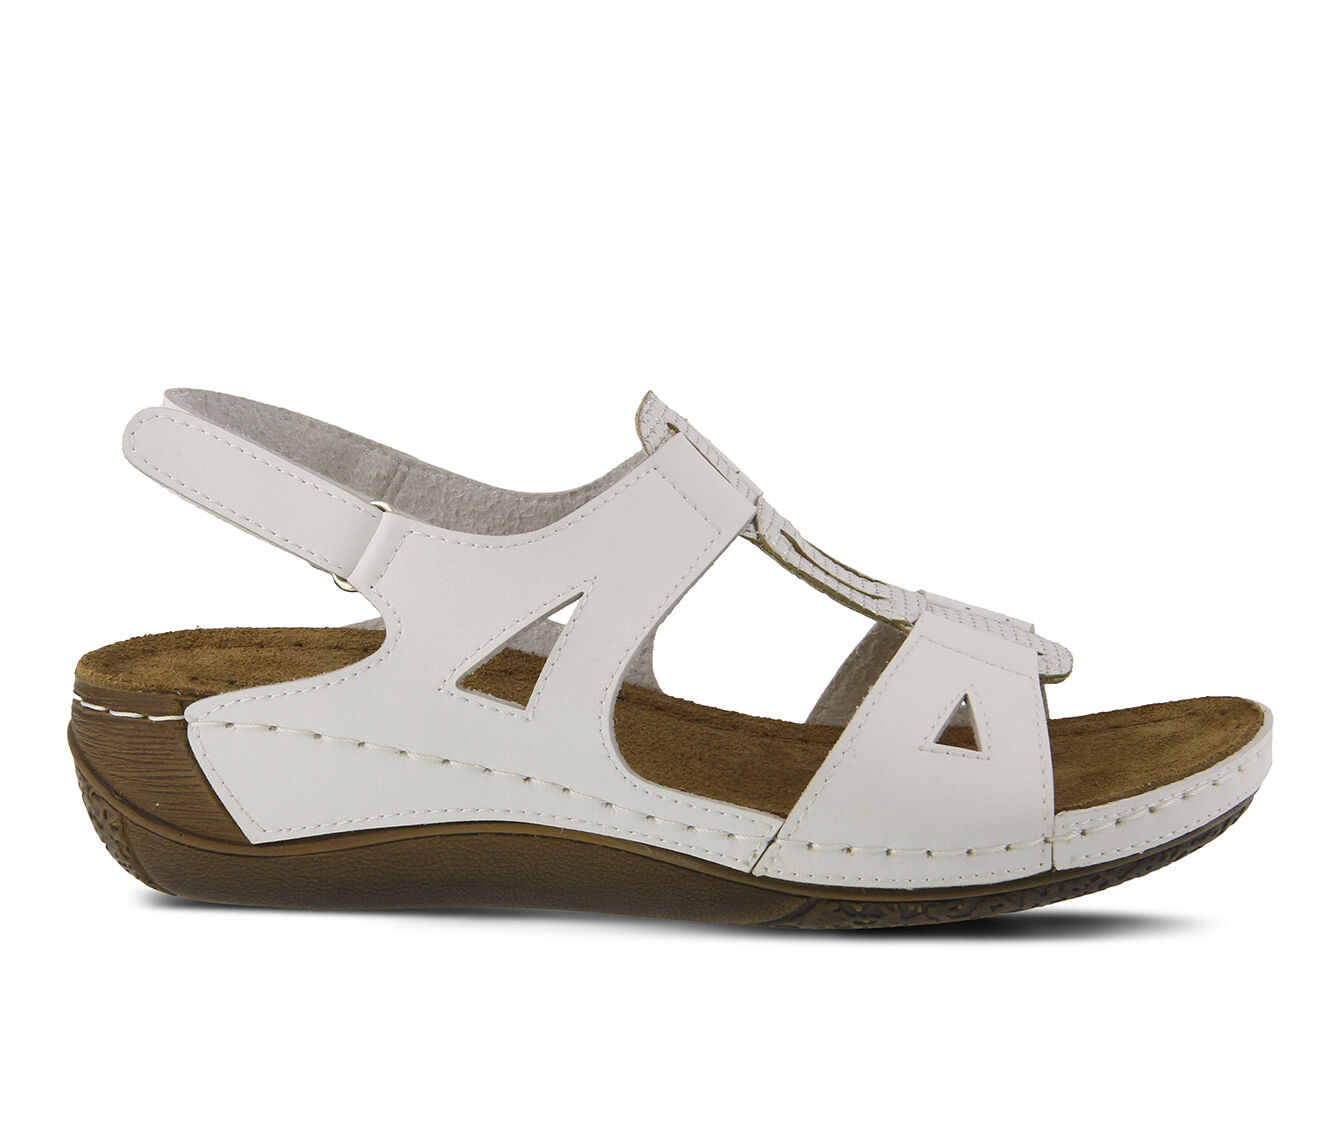 a large variety of Women's FLEXUS Naxos Sandals White